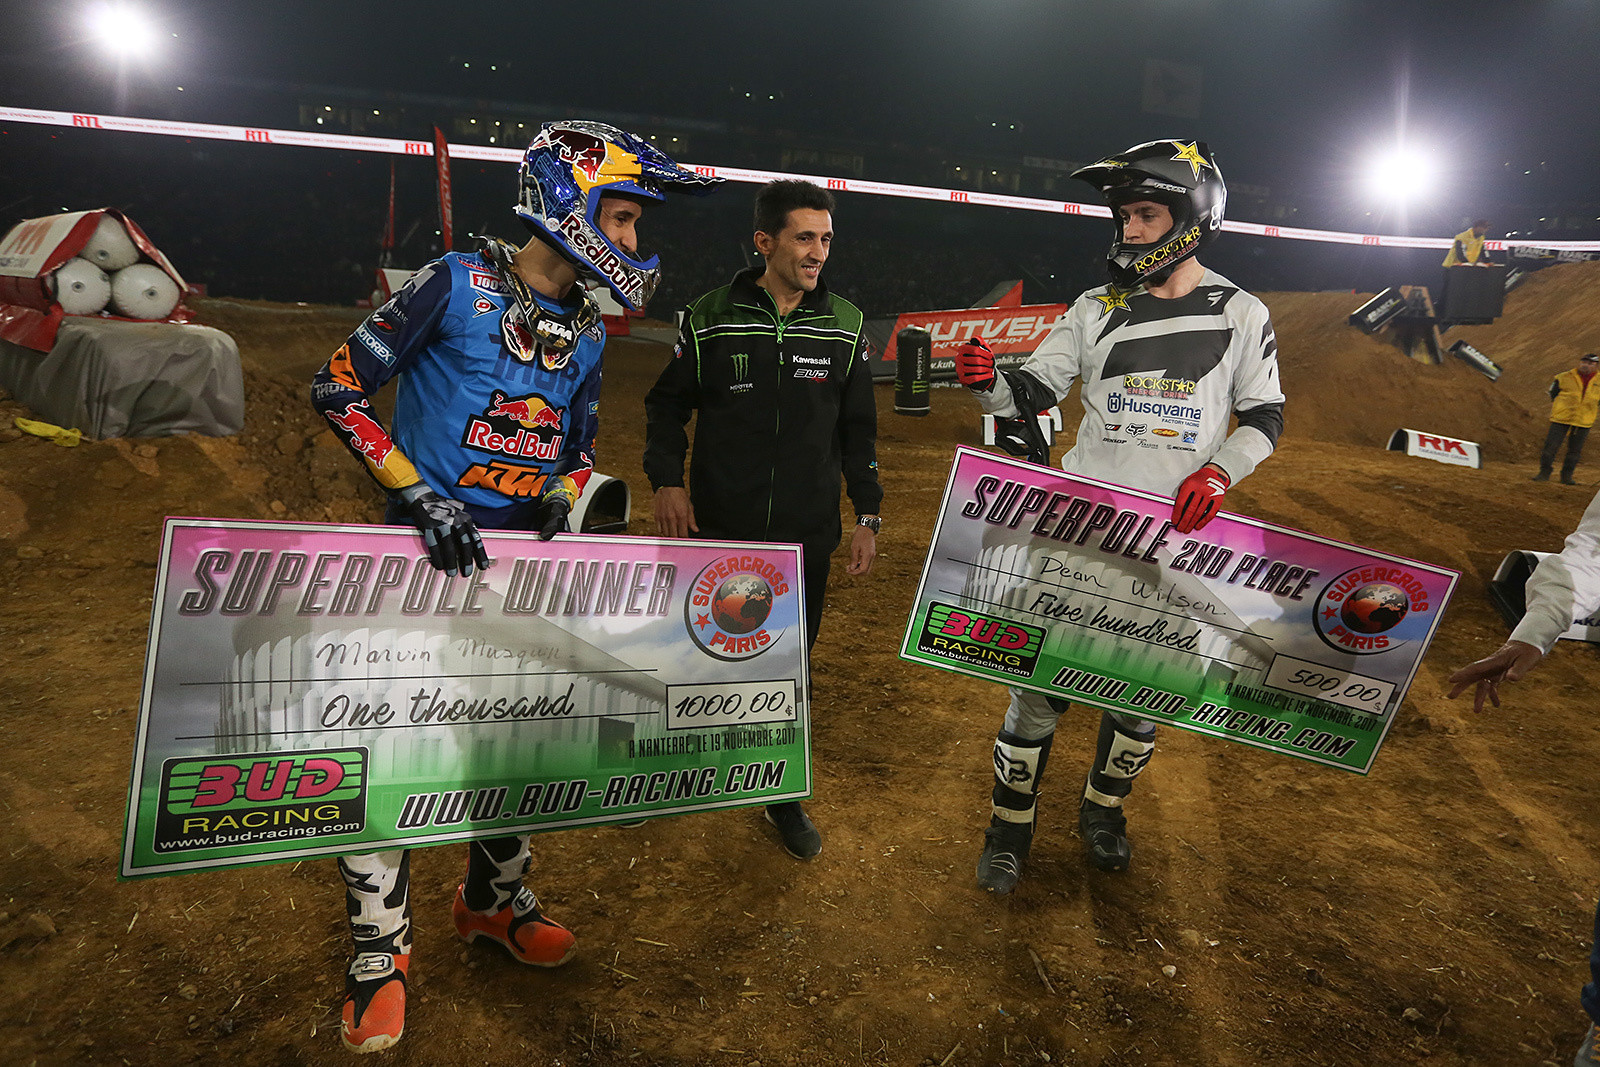 Once again, Marvin Musquin grabbed the Bud Racing-sponsored Superpole, this time by a couple of tenths over Dean Wilson.